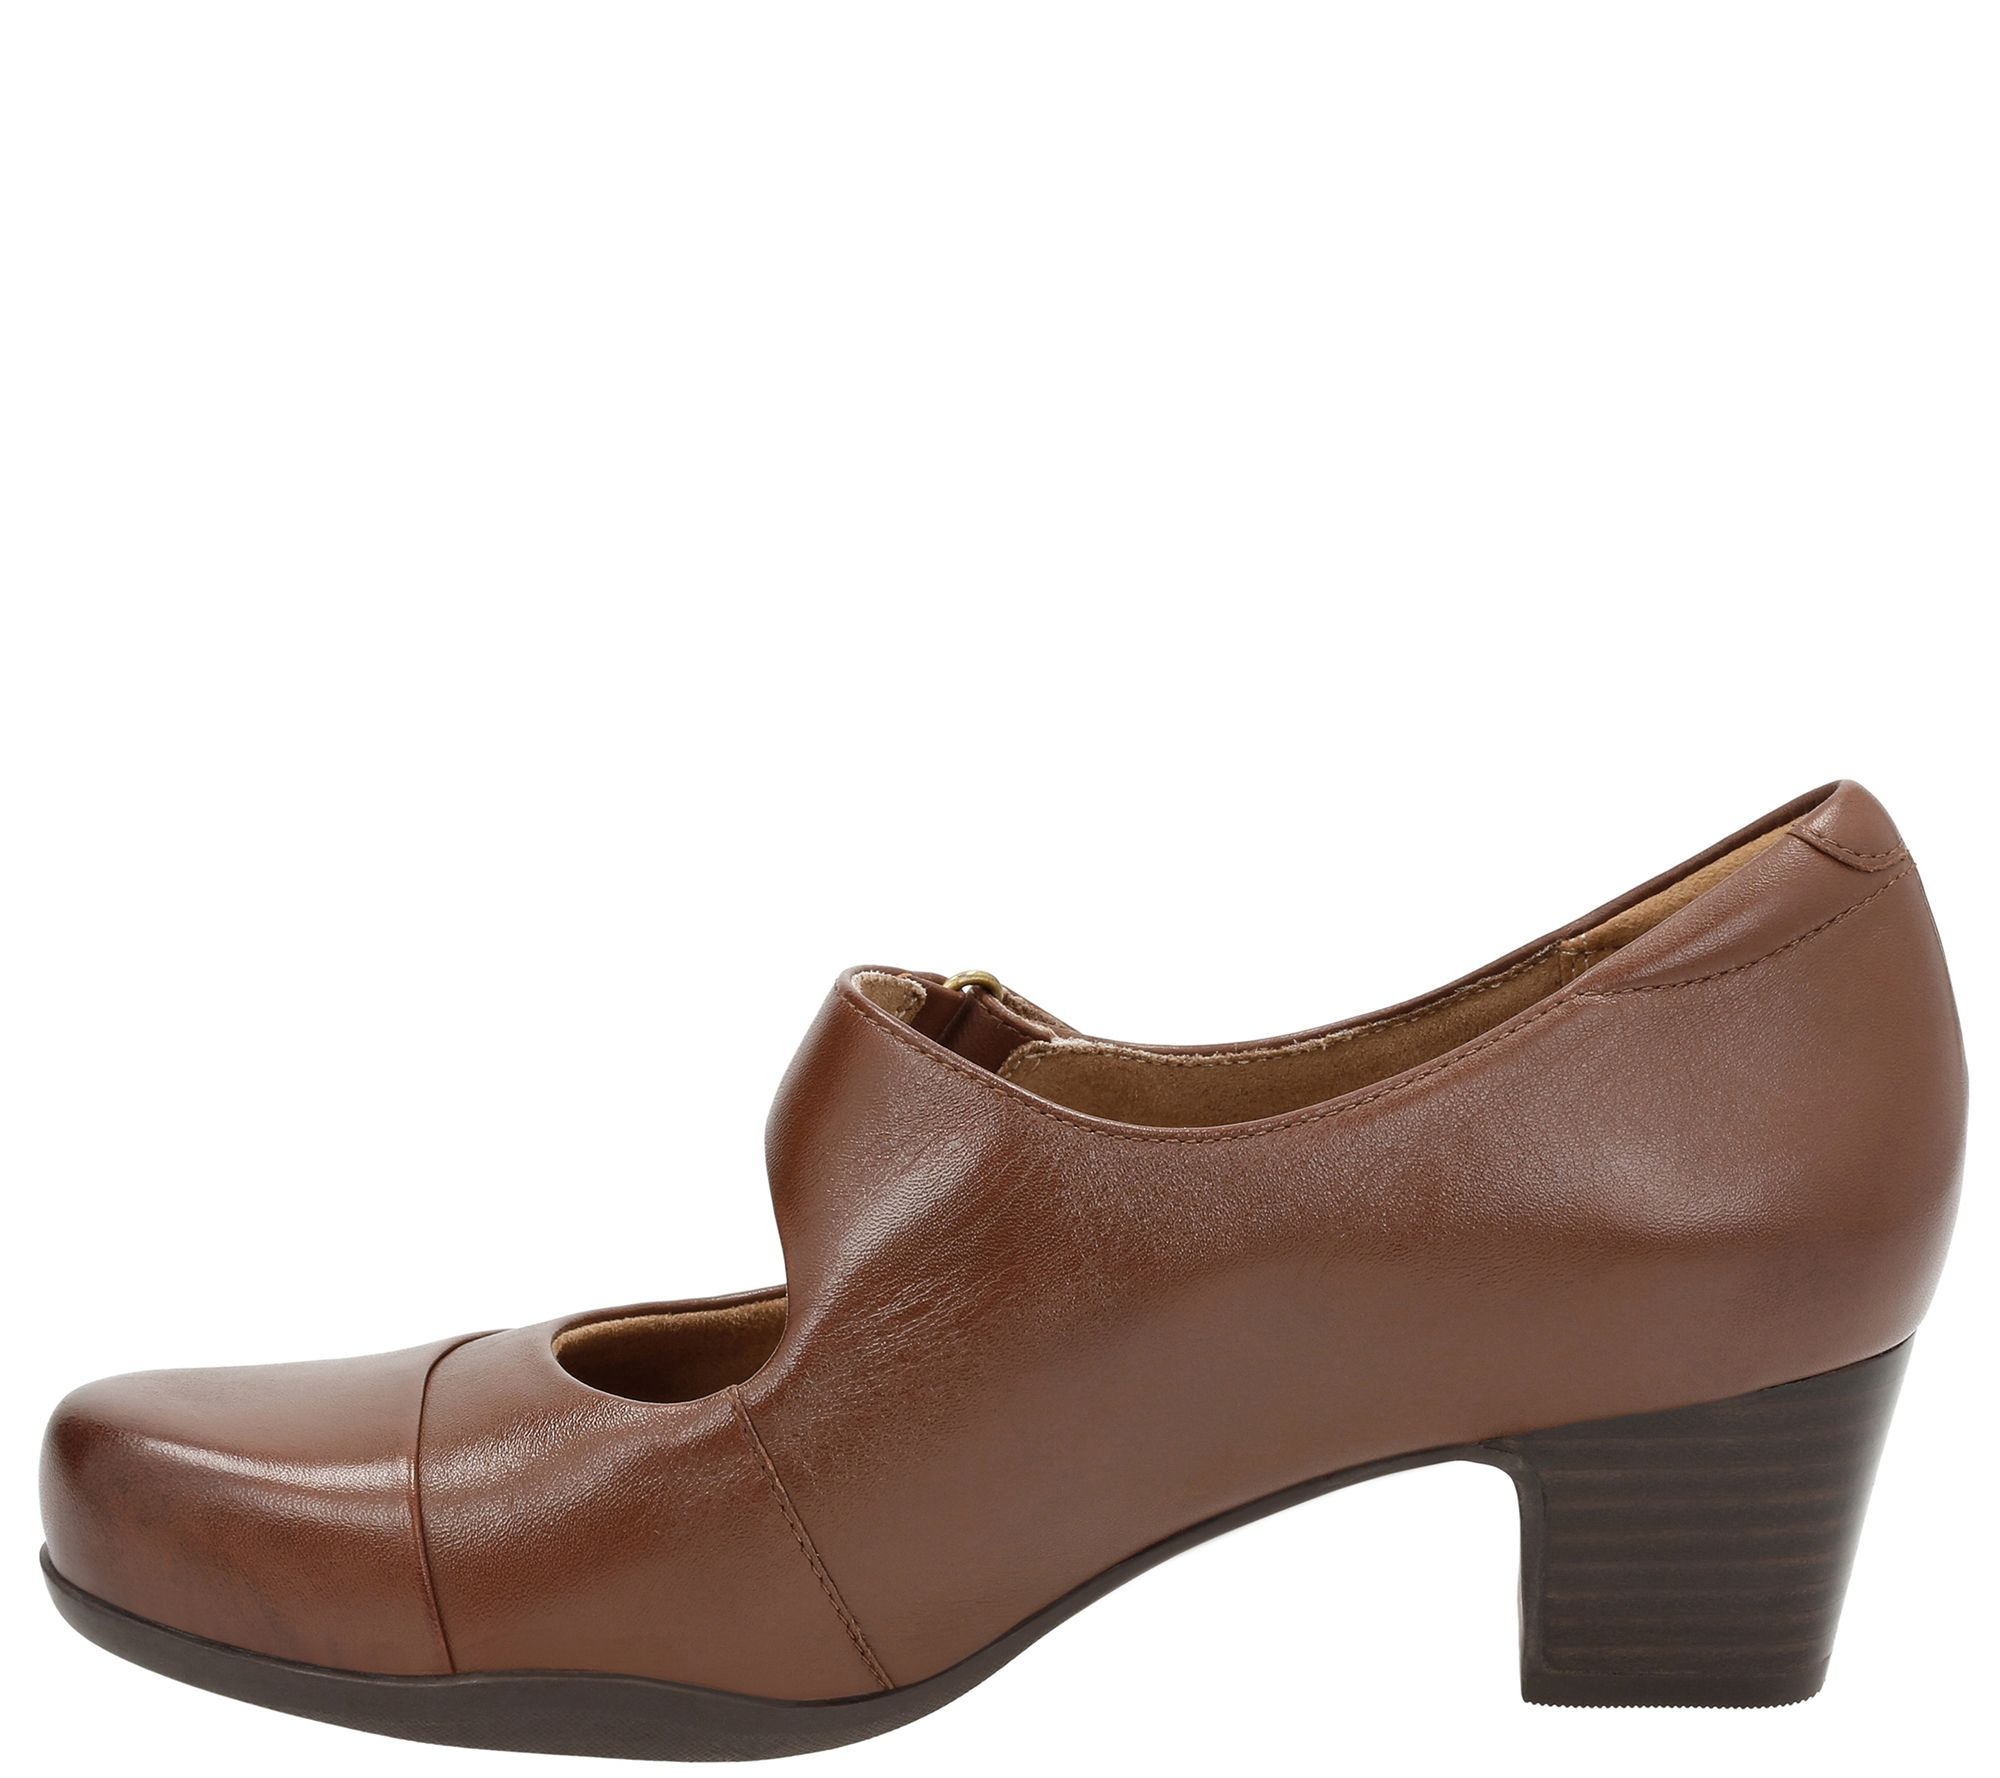 00af298387 Clarks Artisan Leather Mary Jane Pumps - Rosalyn Wren - Page 1 — QVC.com